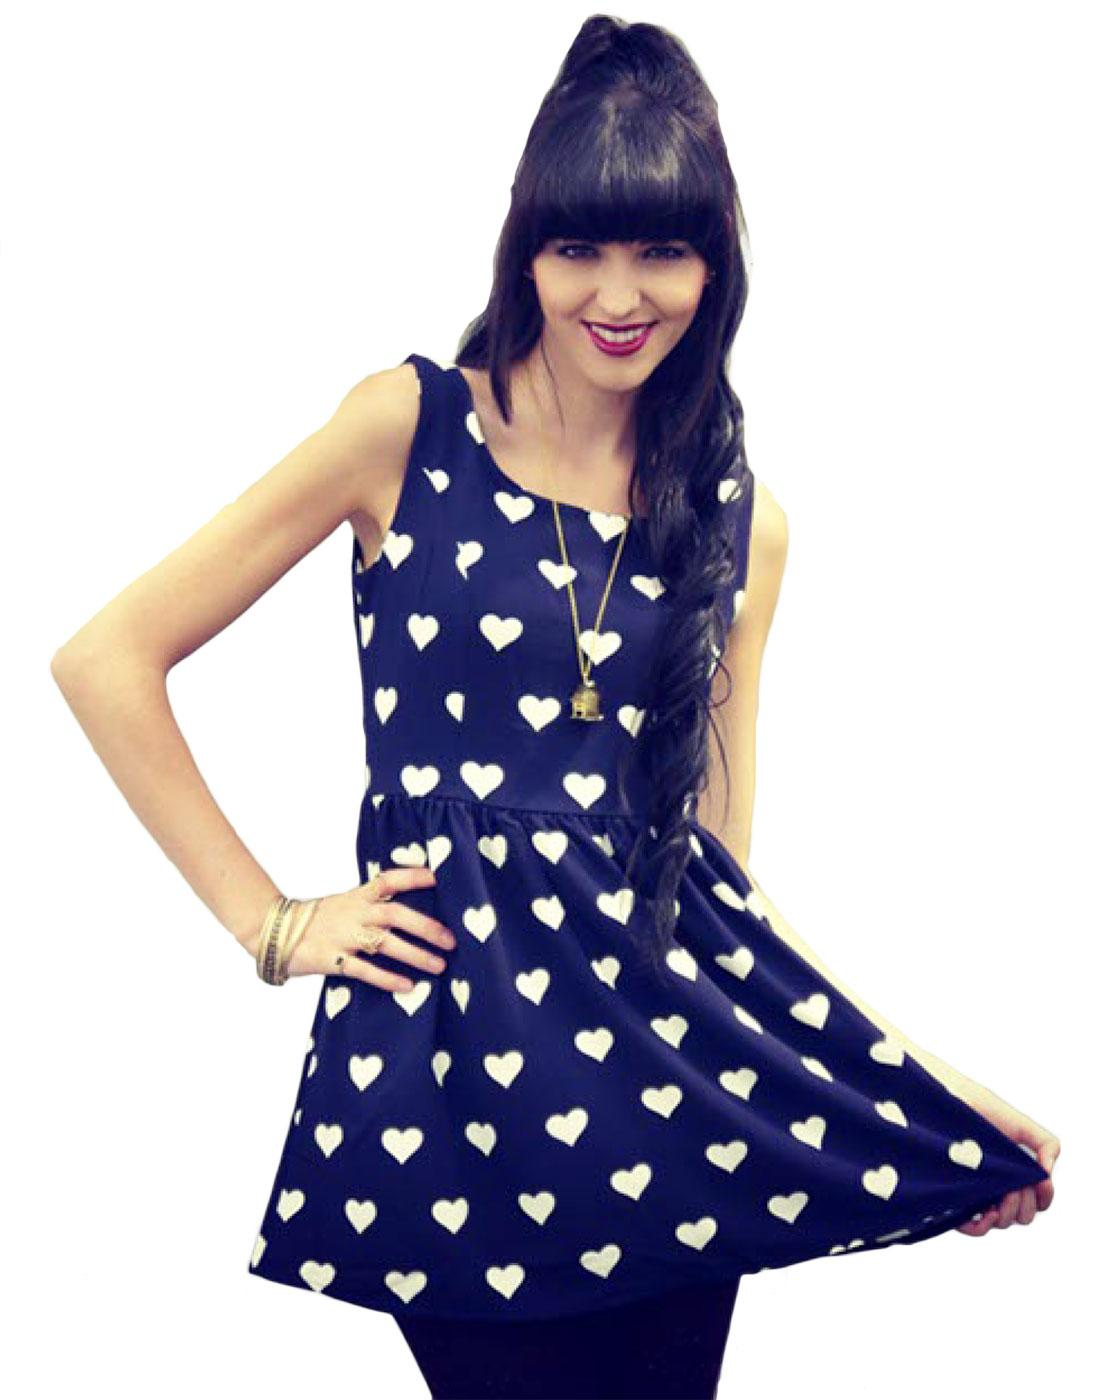 Hannah LOVESTRUCK Retro 60s Vintage Skater Dress